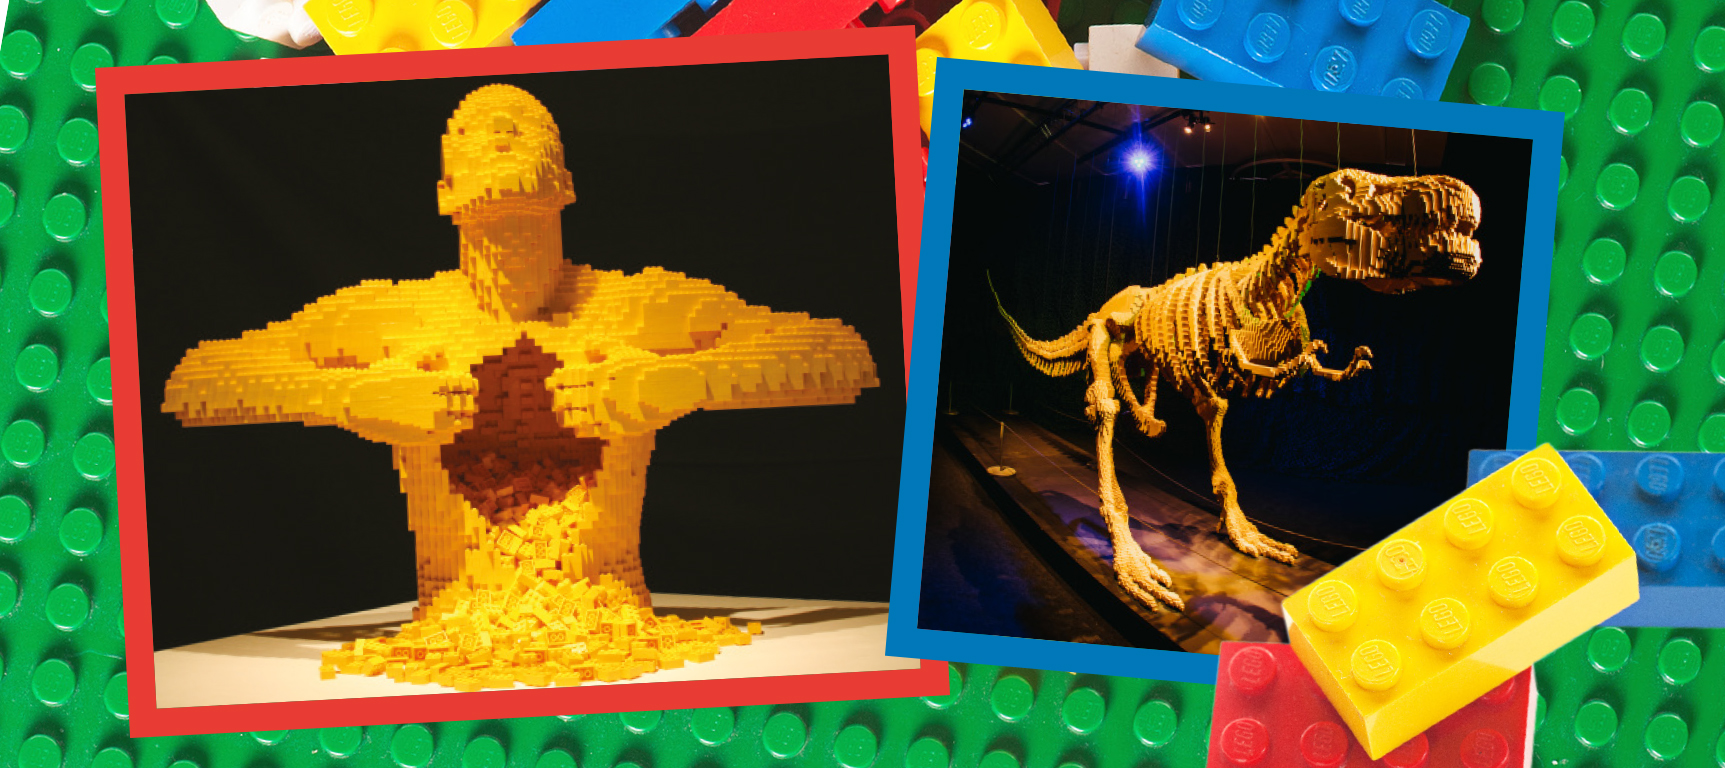 Win Tickets to The Art of Brick